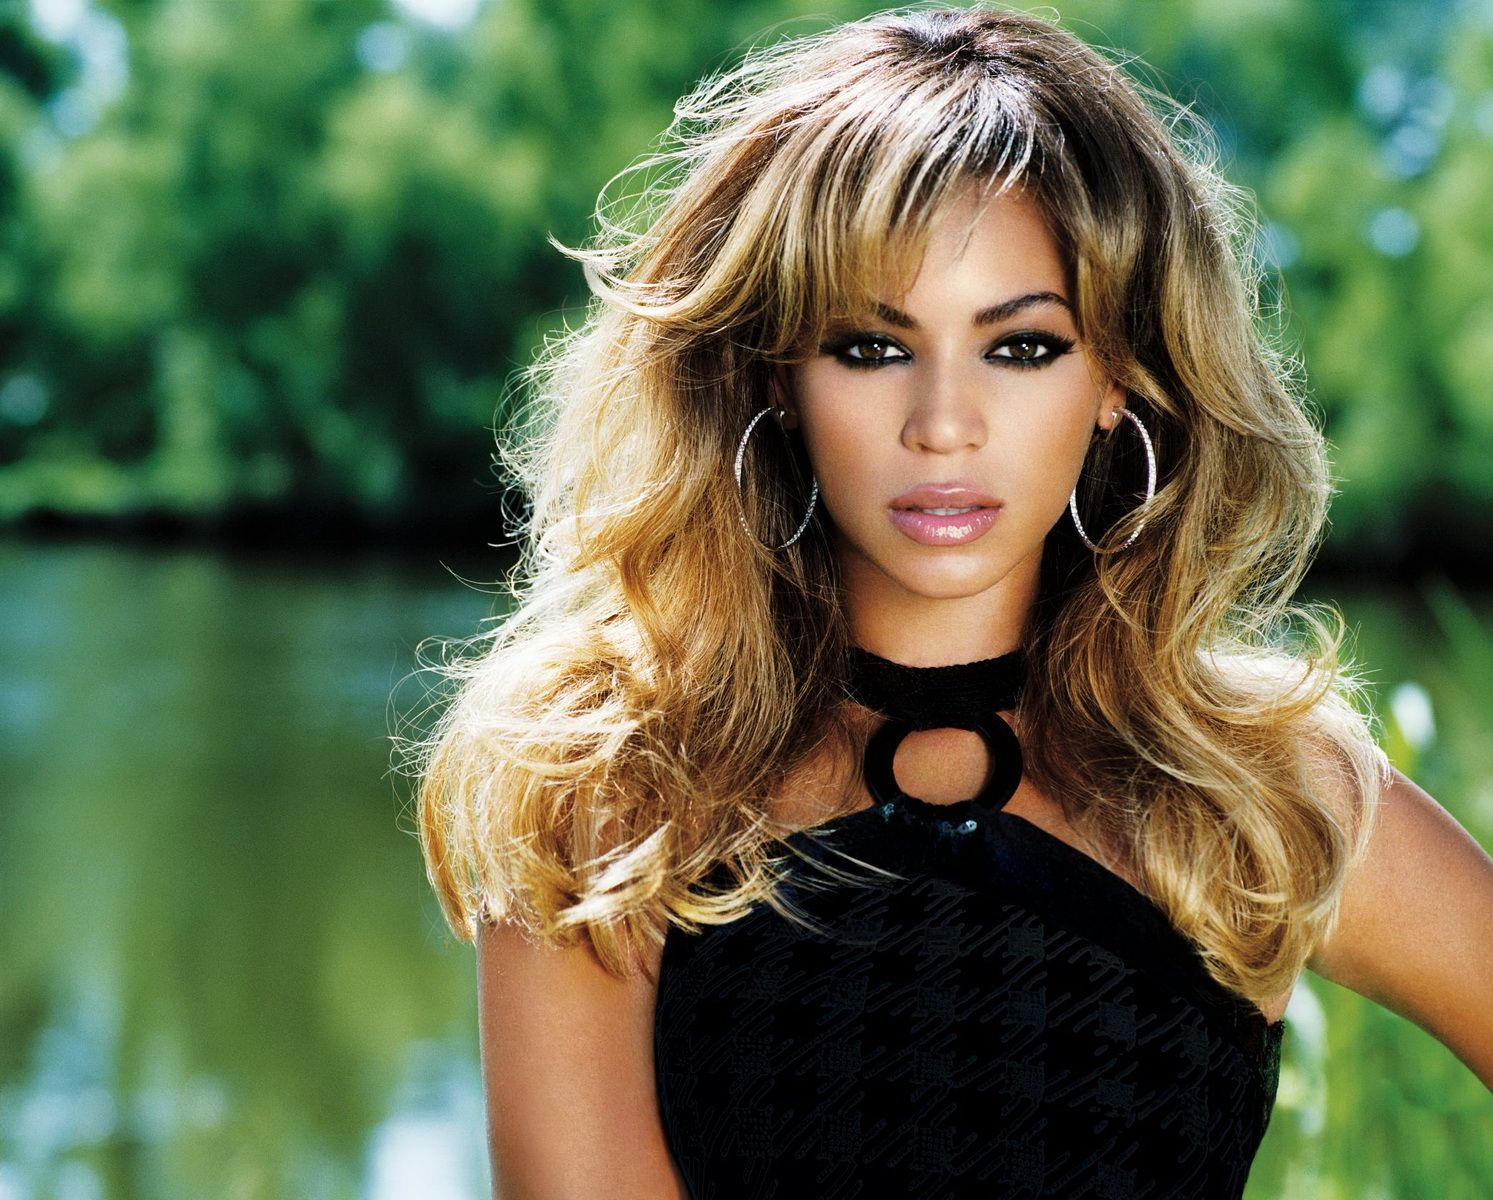 Beyonce - B Day photoshoot. | Beyonce Knowles | Pinterest